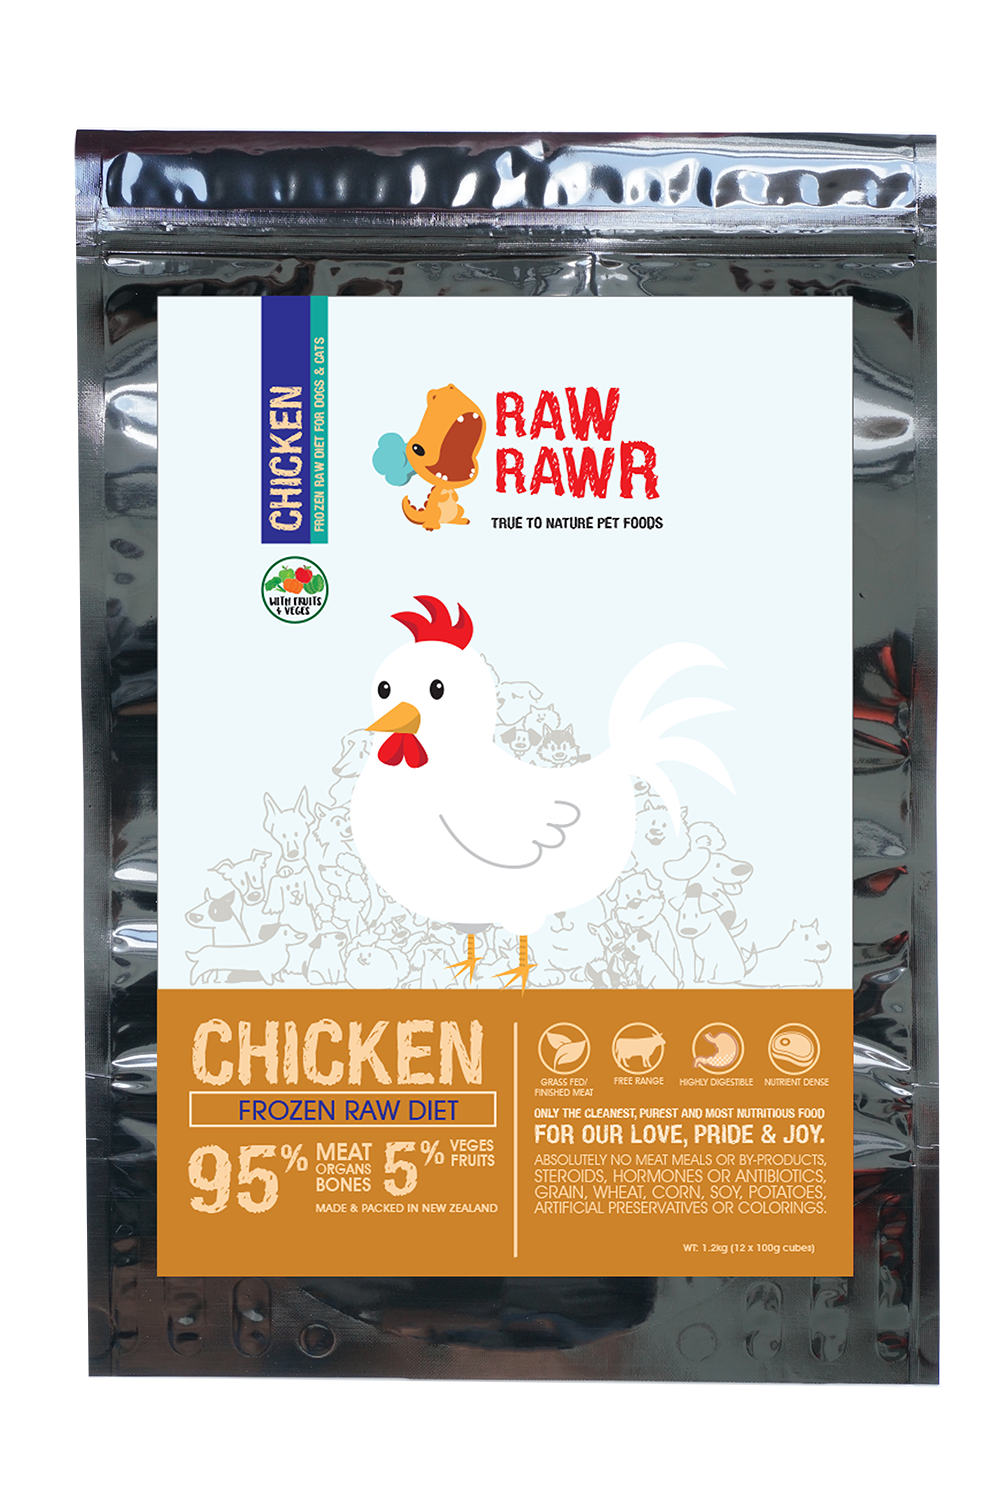 Raw Rawr Frozen Chicken Diet